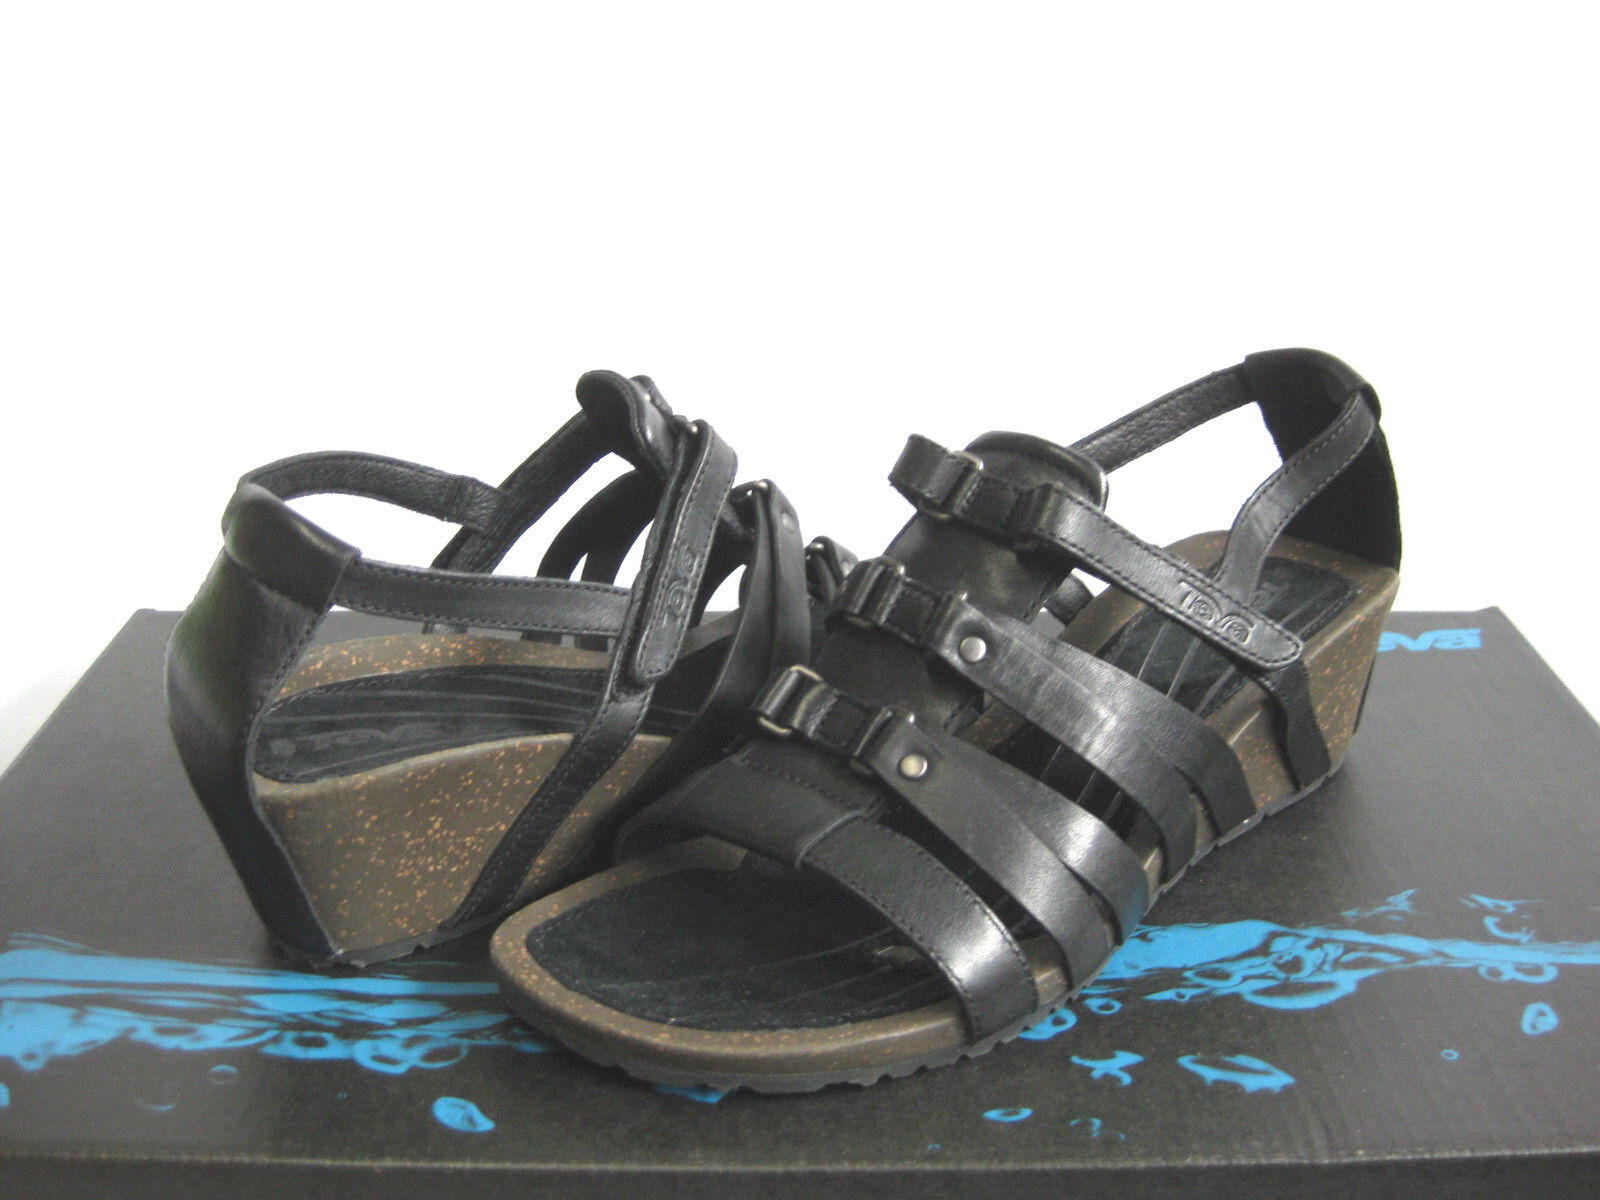 Teva Cabrillo nero donna Sandals US9.5 UK7.5 EU40.5 JP262